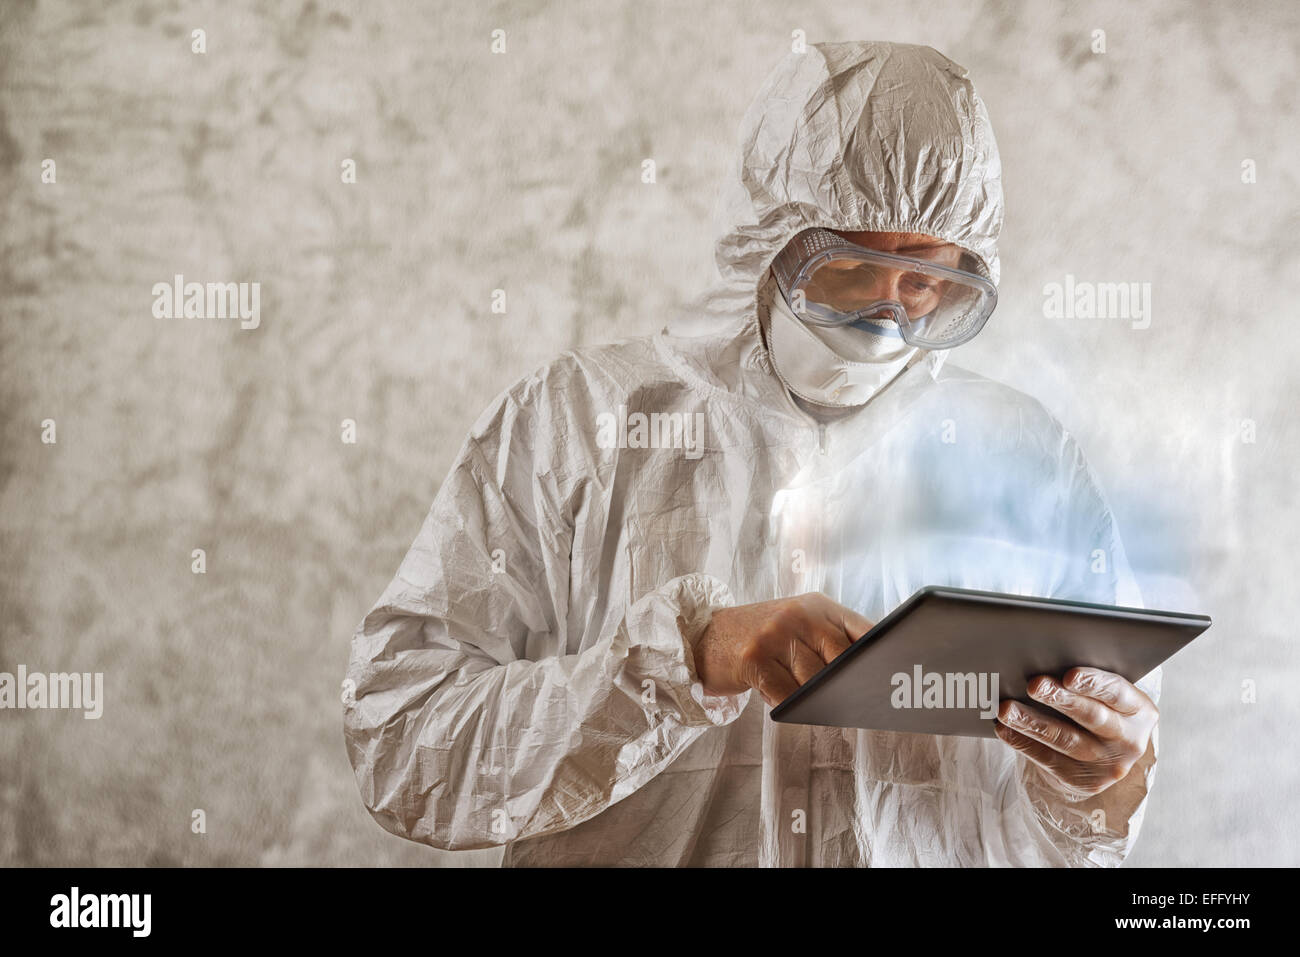 Chemical Scientist in Protective Laboratory Clothing Using Digital Tablet Computer - Stock Image